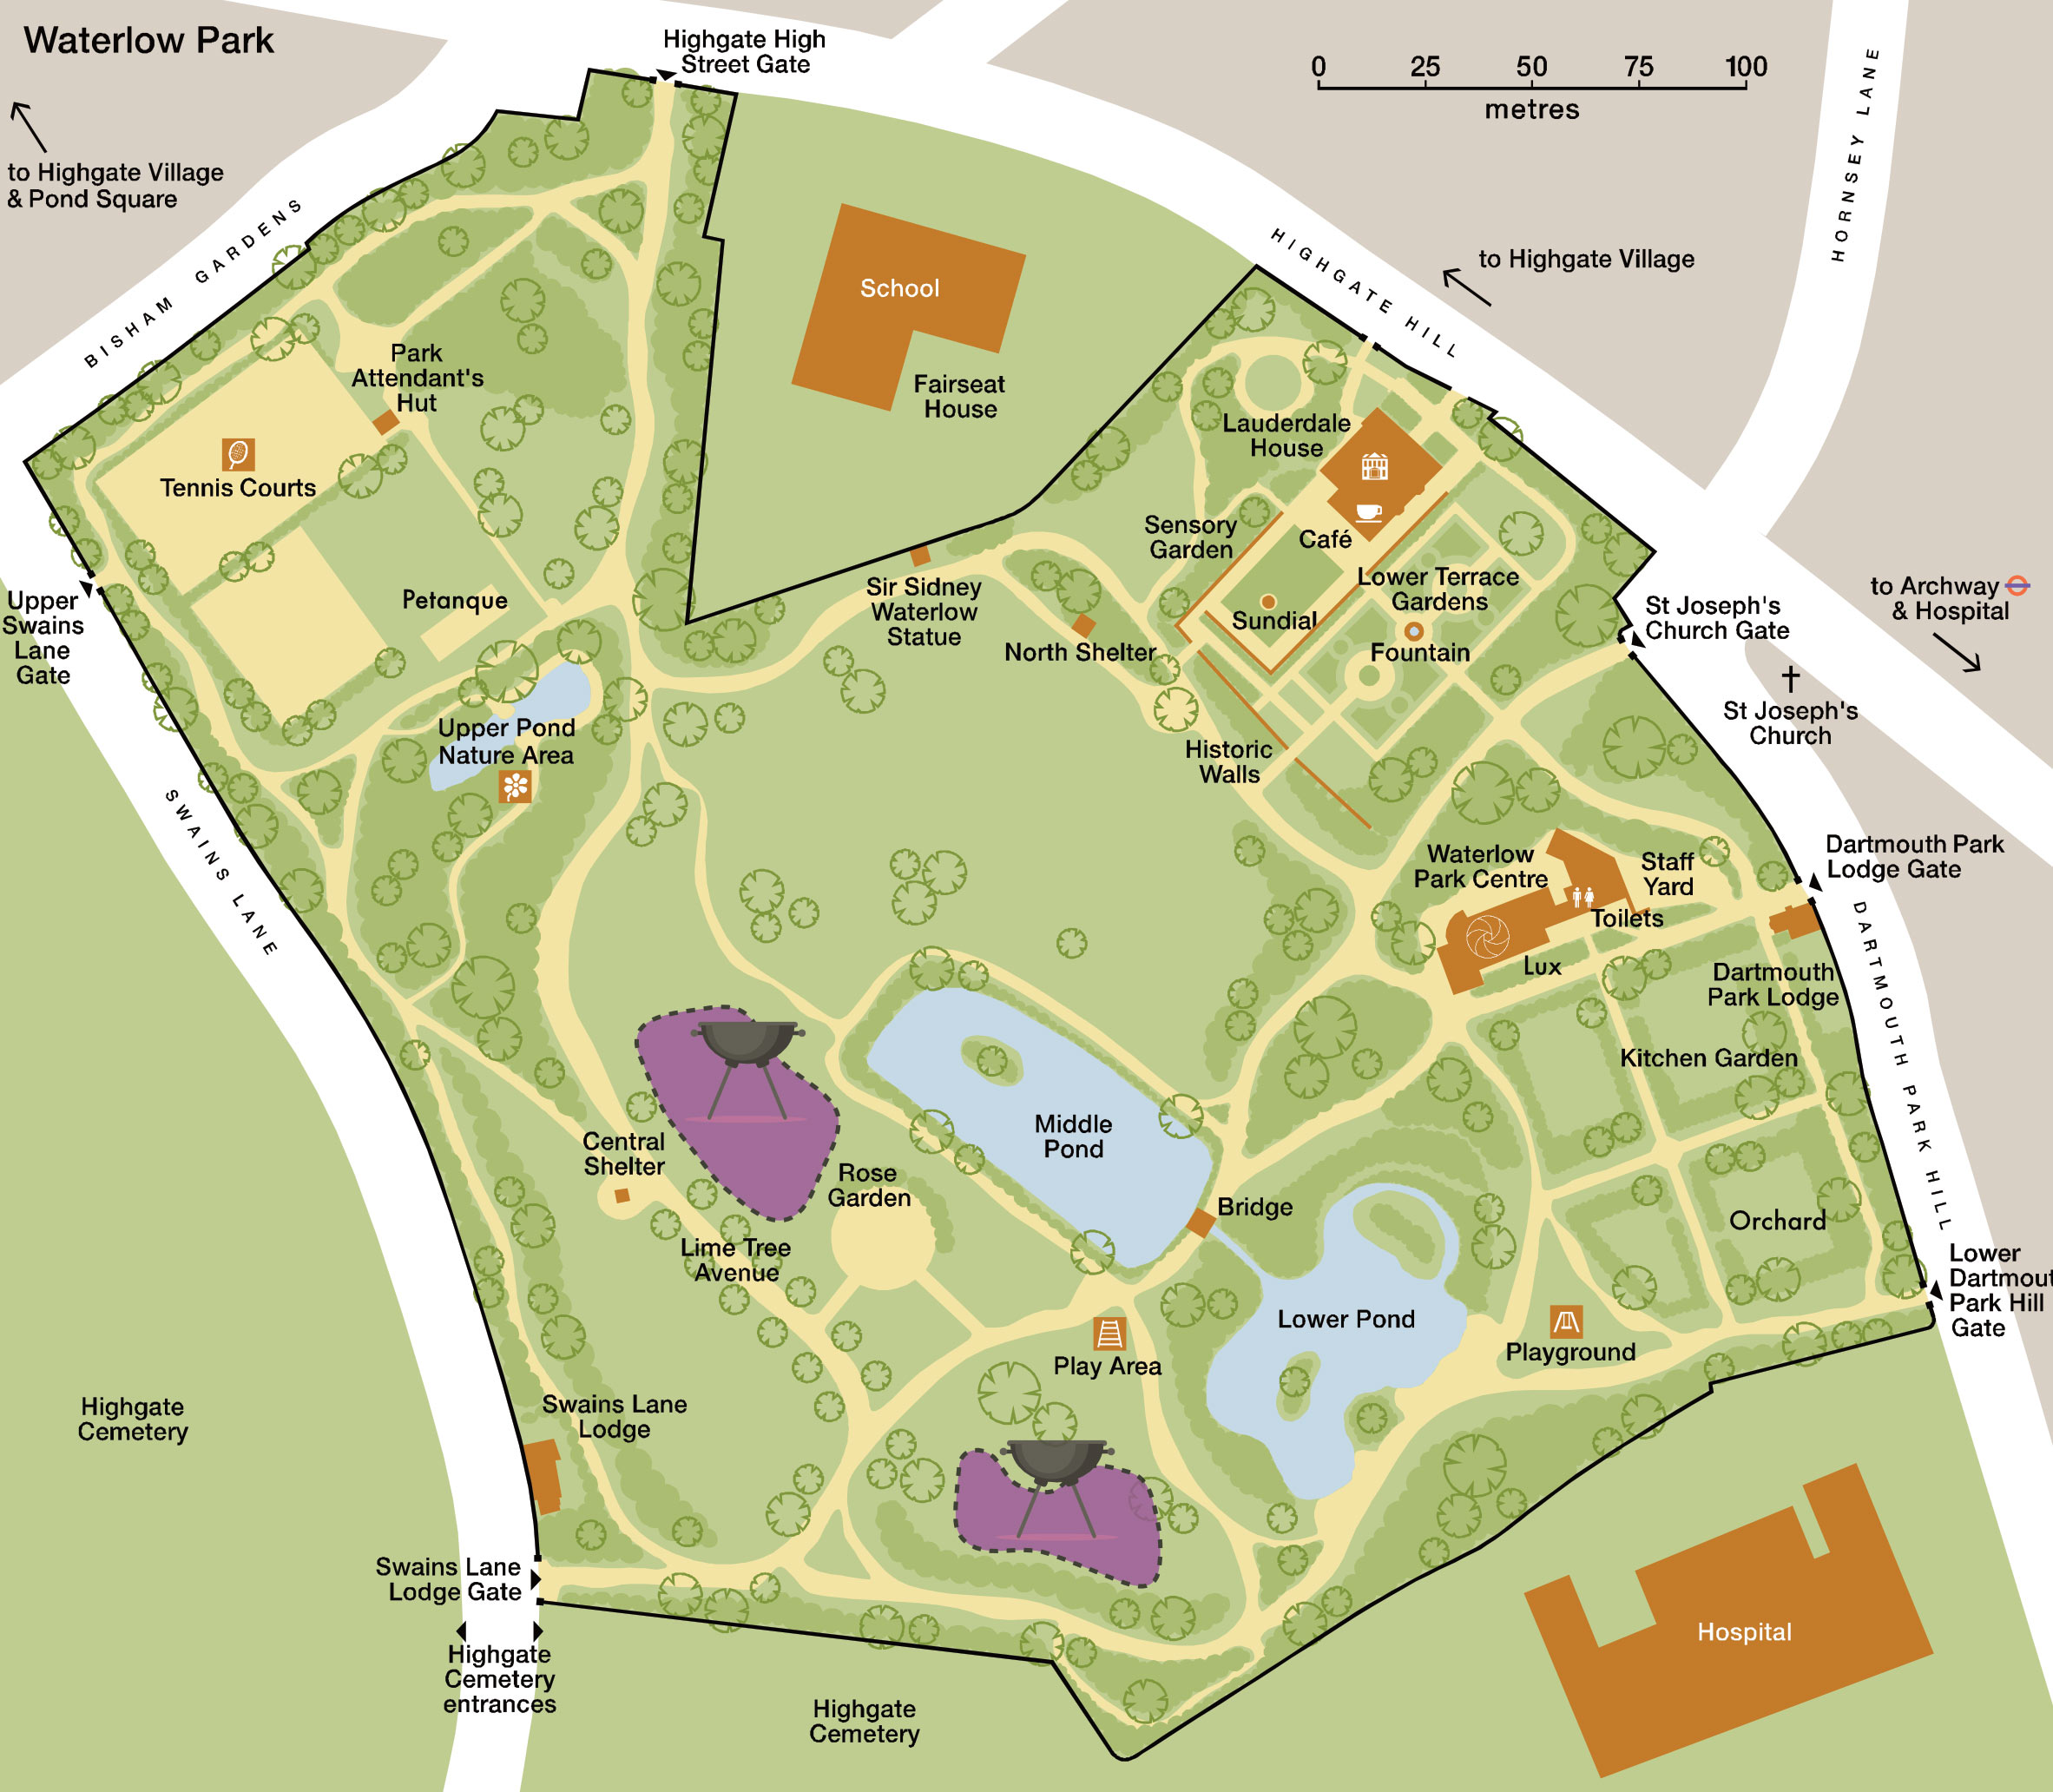 waterlow-park-map-2019L